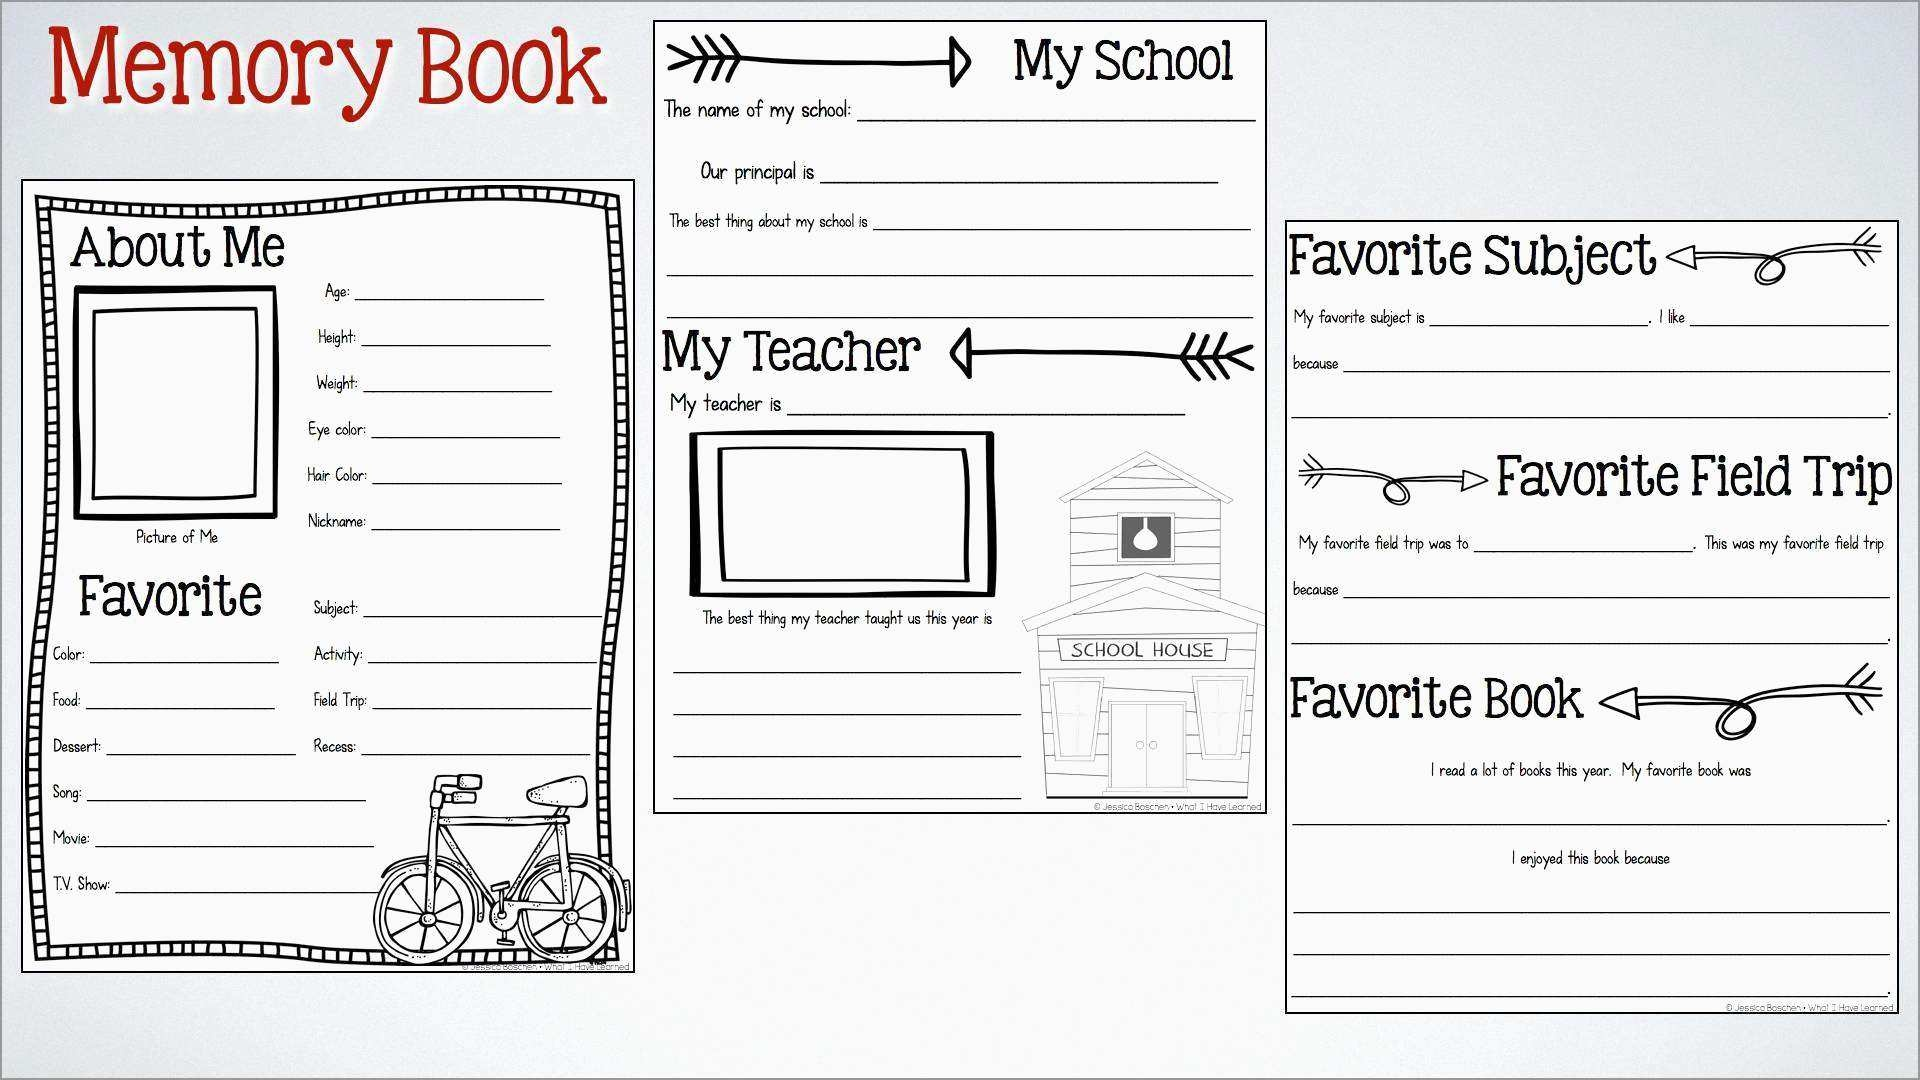 Awesome Free Printable Memory Book Templates | Best Of Template - Free Printable Memory Book Templates